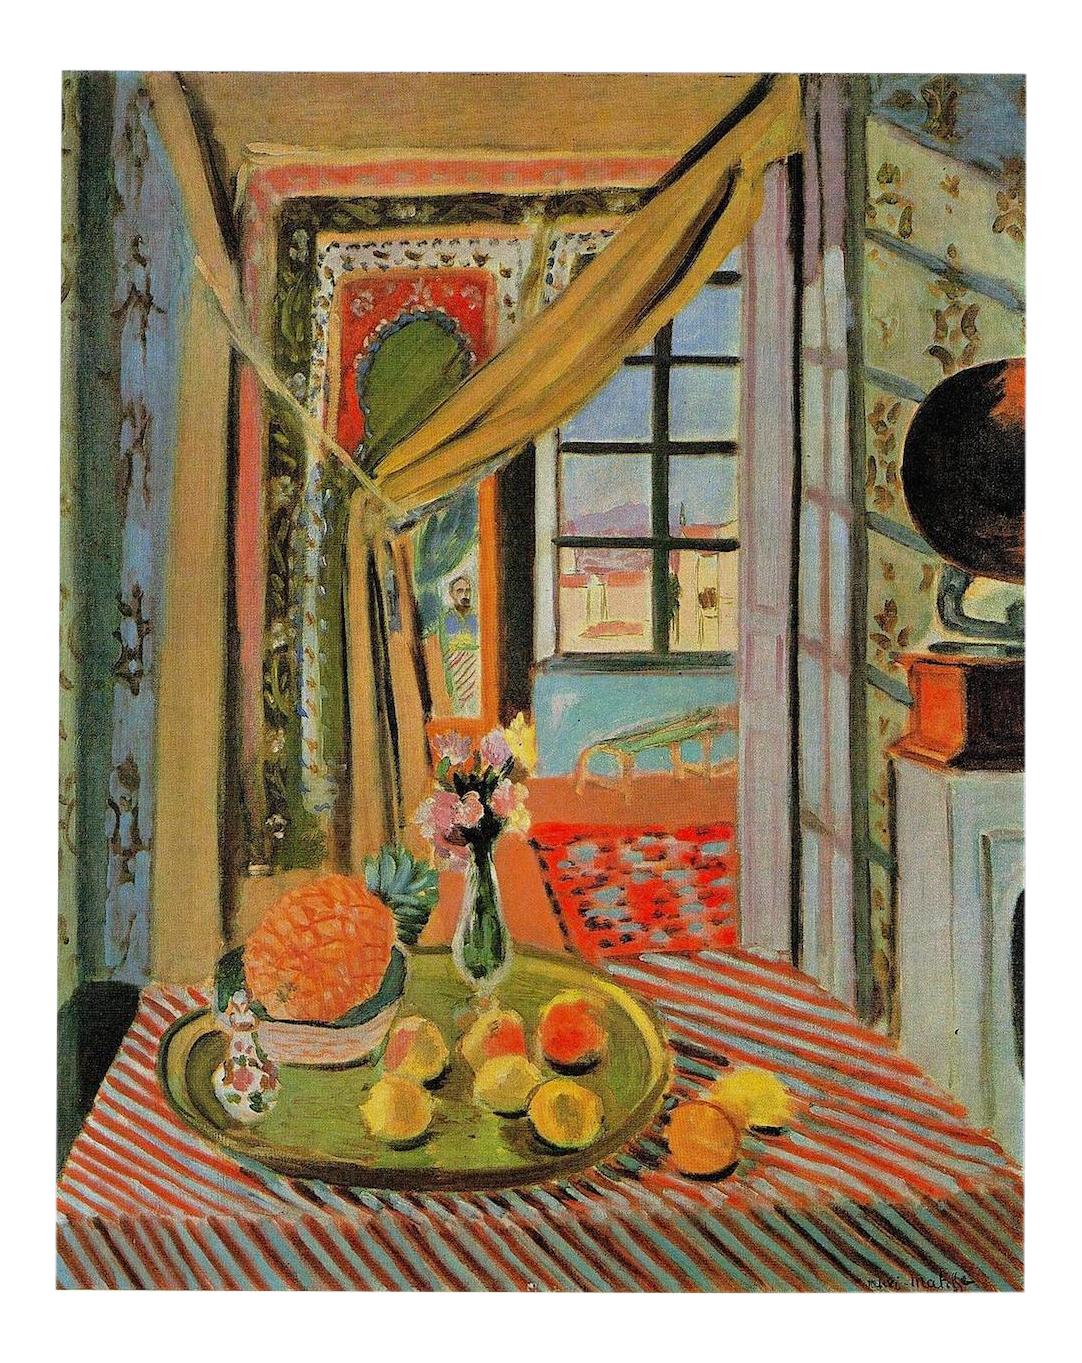 Matisse drawing room. Vintage lithograph print interior